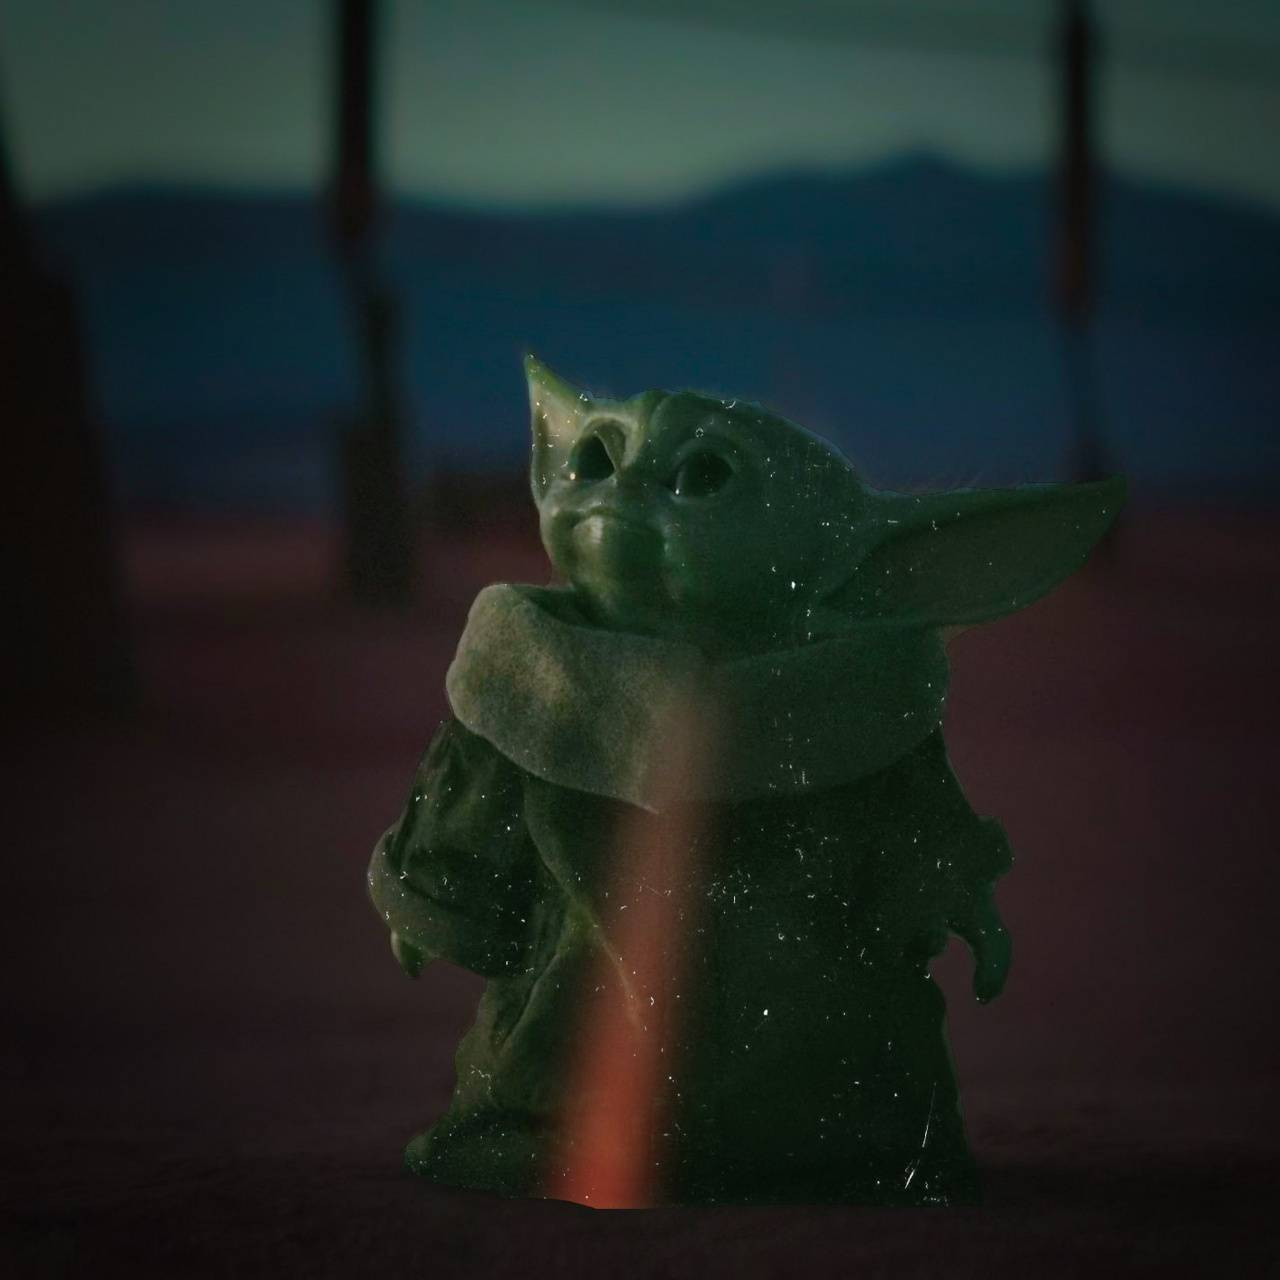 Awesome Baby Yoda Wallpaper Iphone Cute Pictures